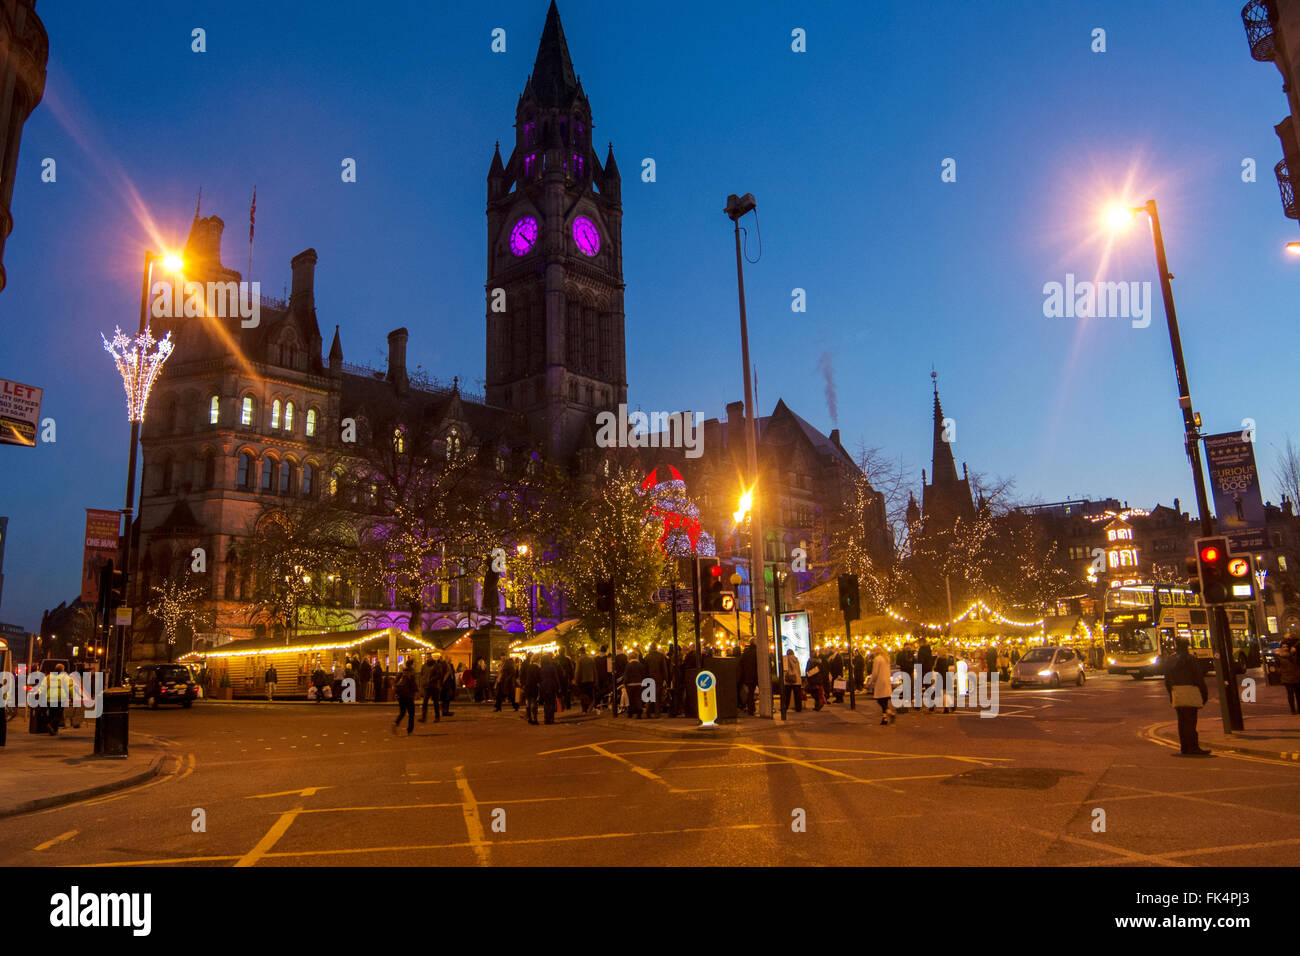 Manchester Christmas Market in front of the Town Hall in Albert Square. - Stock Image